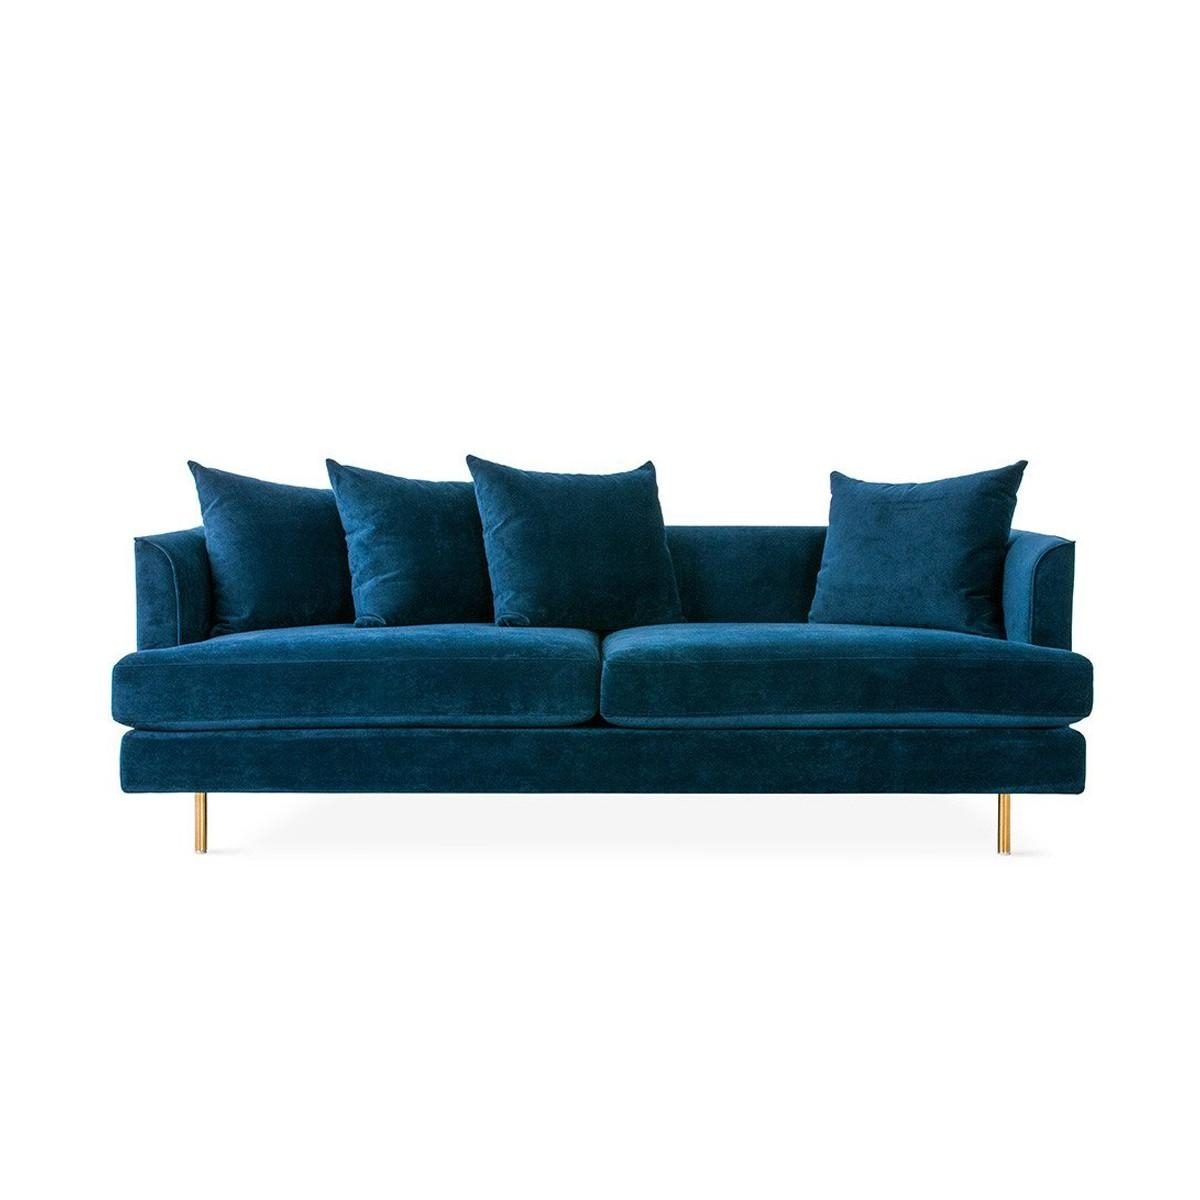 Gus Modern – Margot 3 Seater Sofa – Modern Sofas For Your Living Within Modern 3 Seater Sofas (Image 6 of 20)